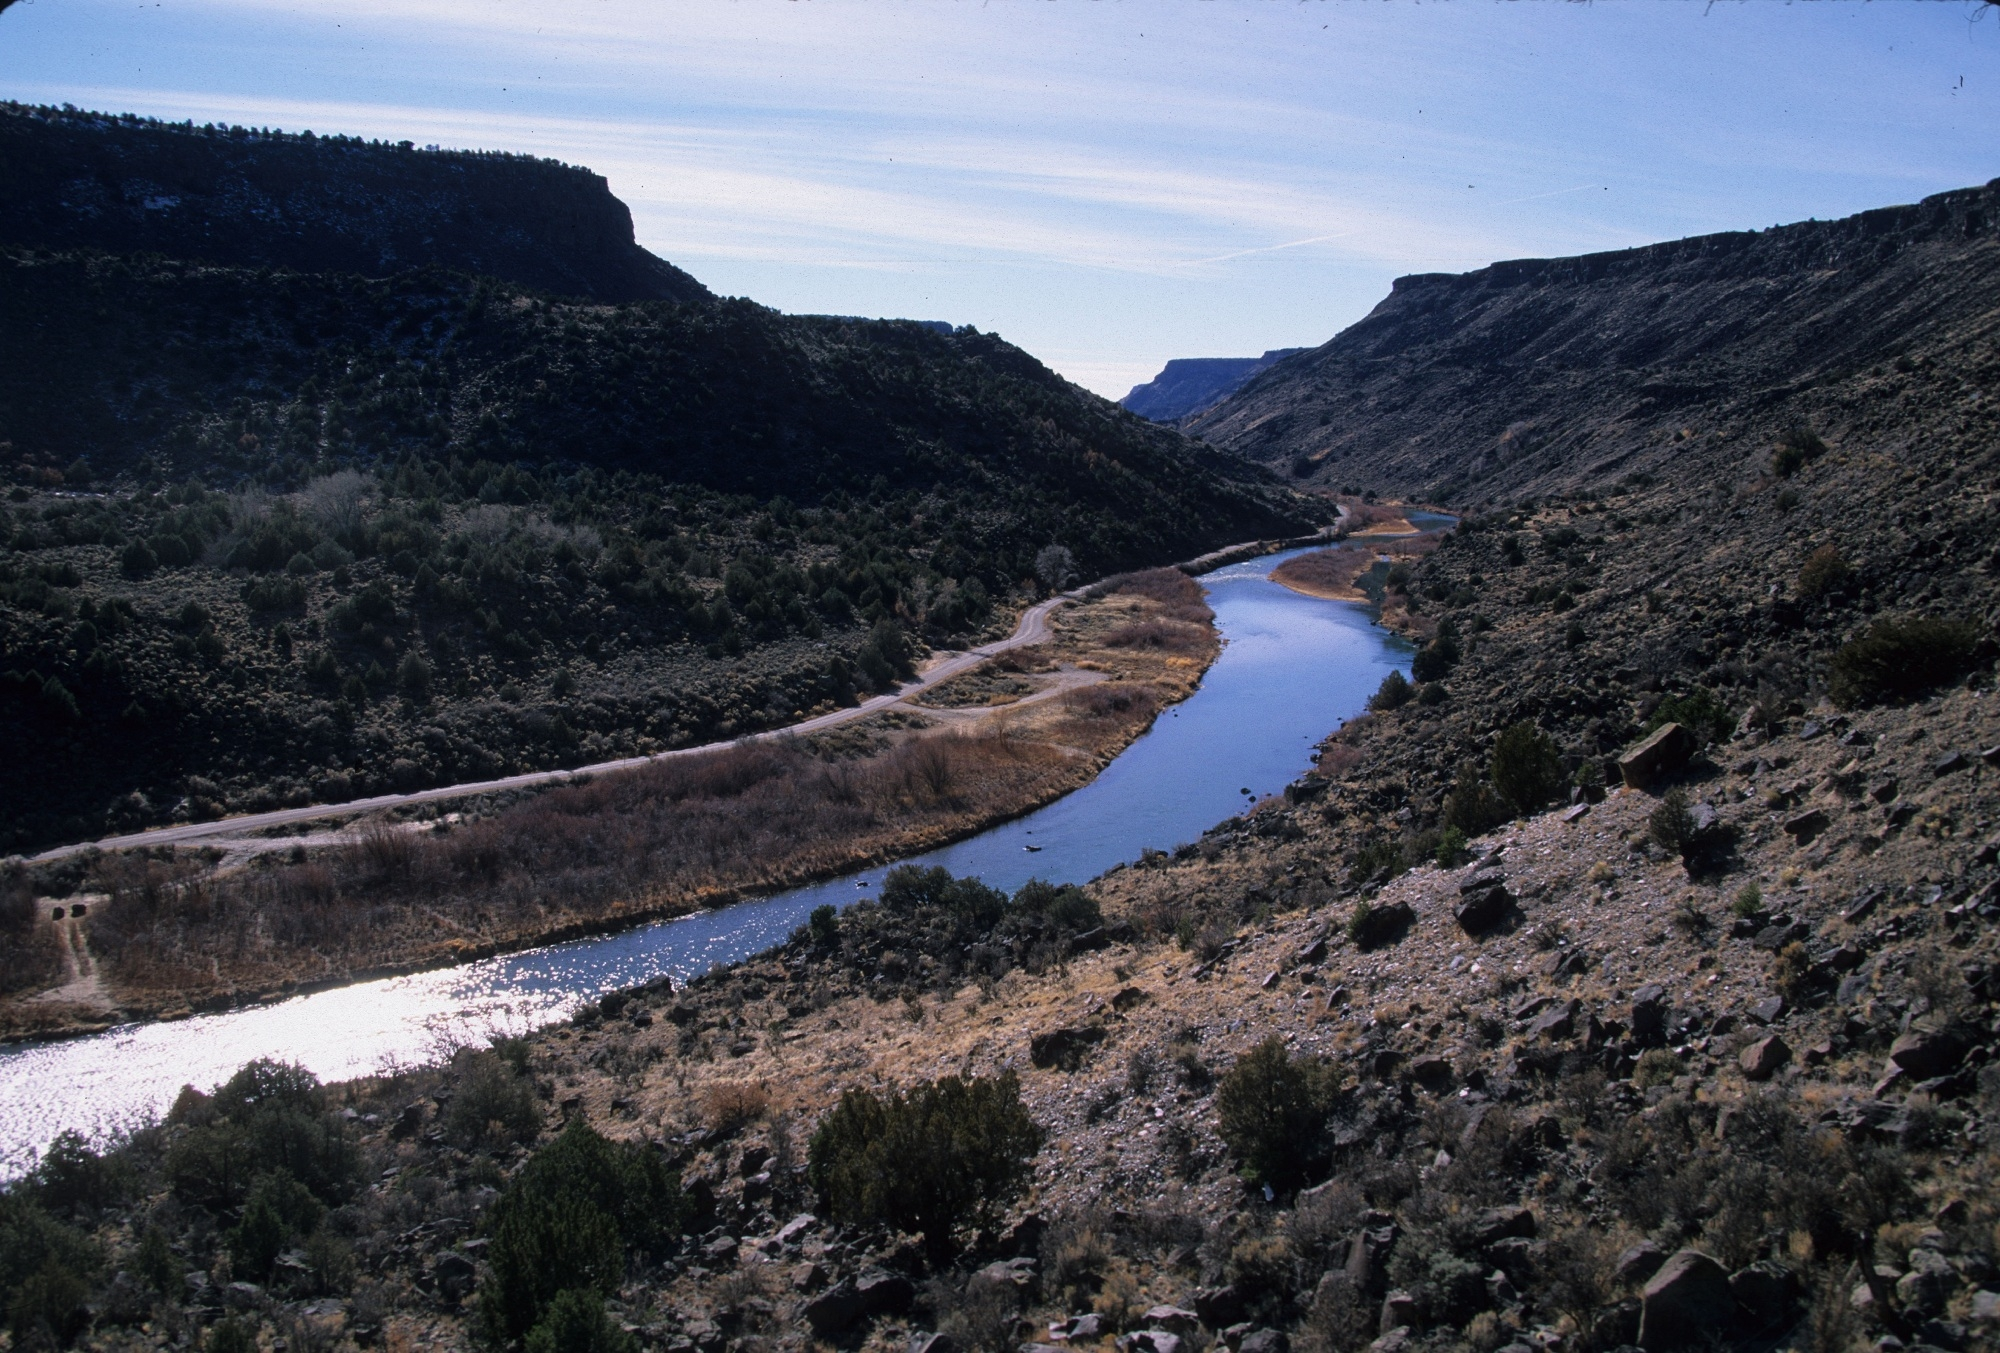 Arid desert plateaus flank the Rio Chama river in New Mexico